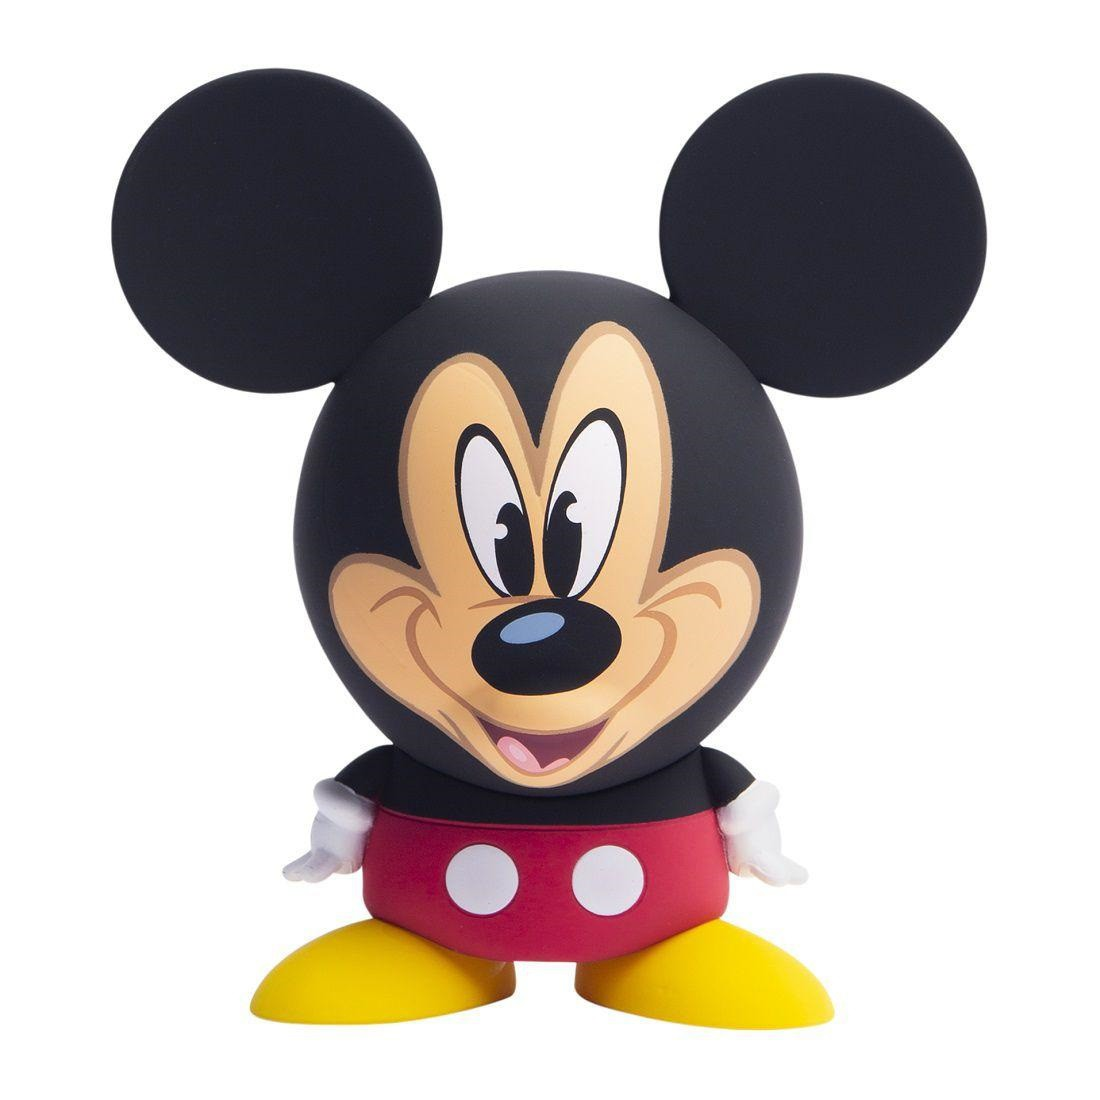 Disney Shorts Classic - Series 03 - Mickey Mouse